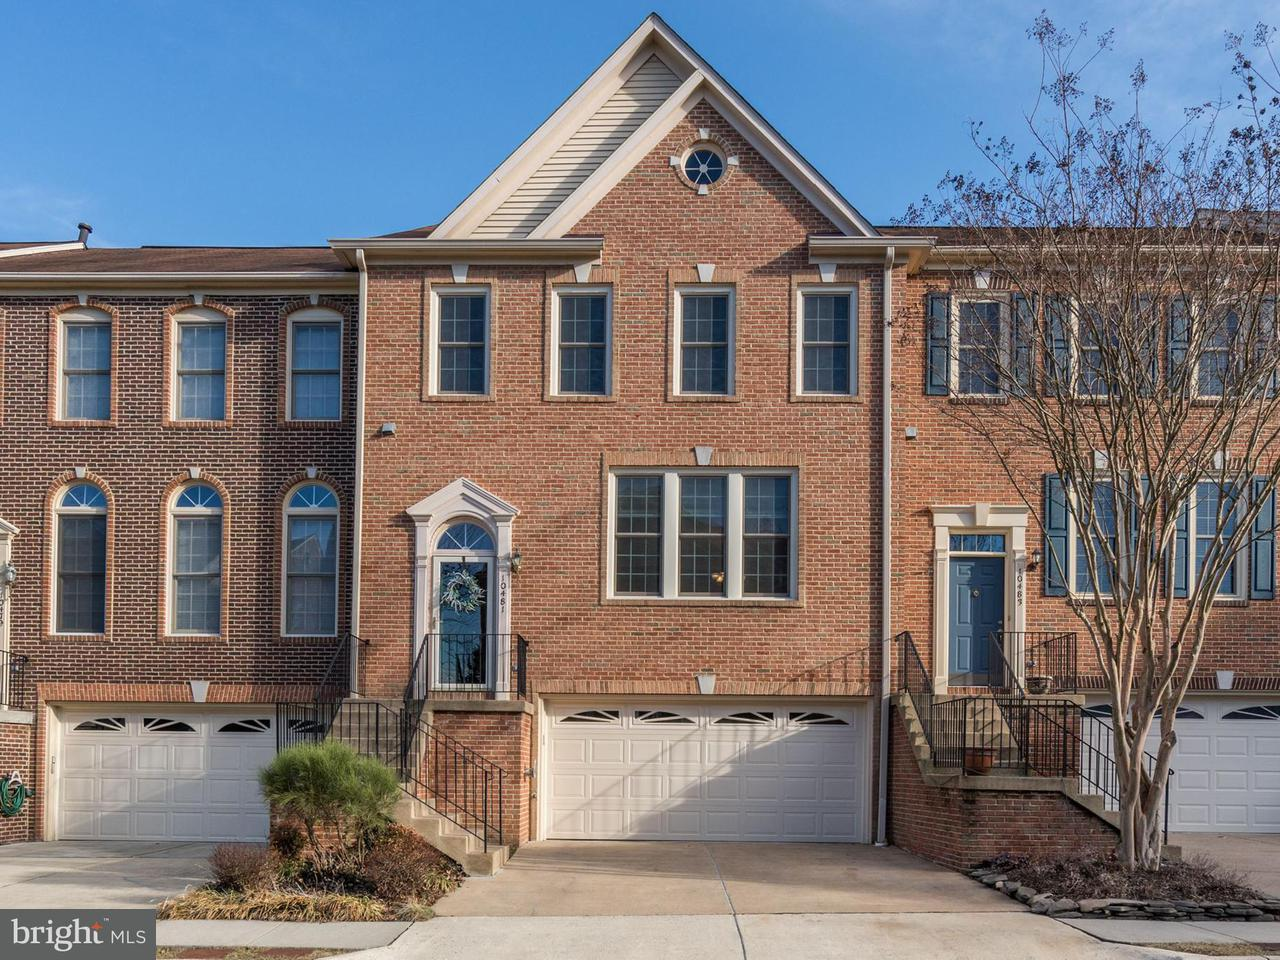 Townhouse for Sale at 10481 Courtney Drive 10481 Courtney Drive Fairfax, Virginia 22030 United States